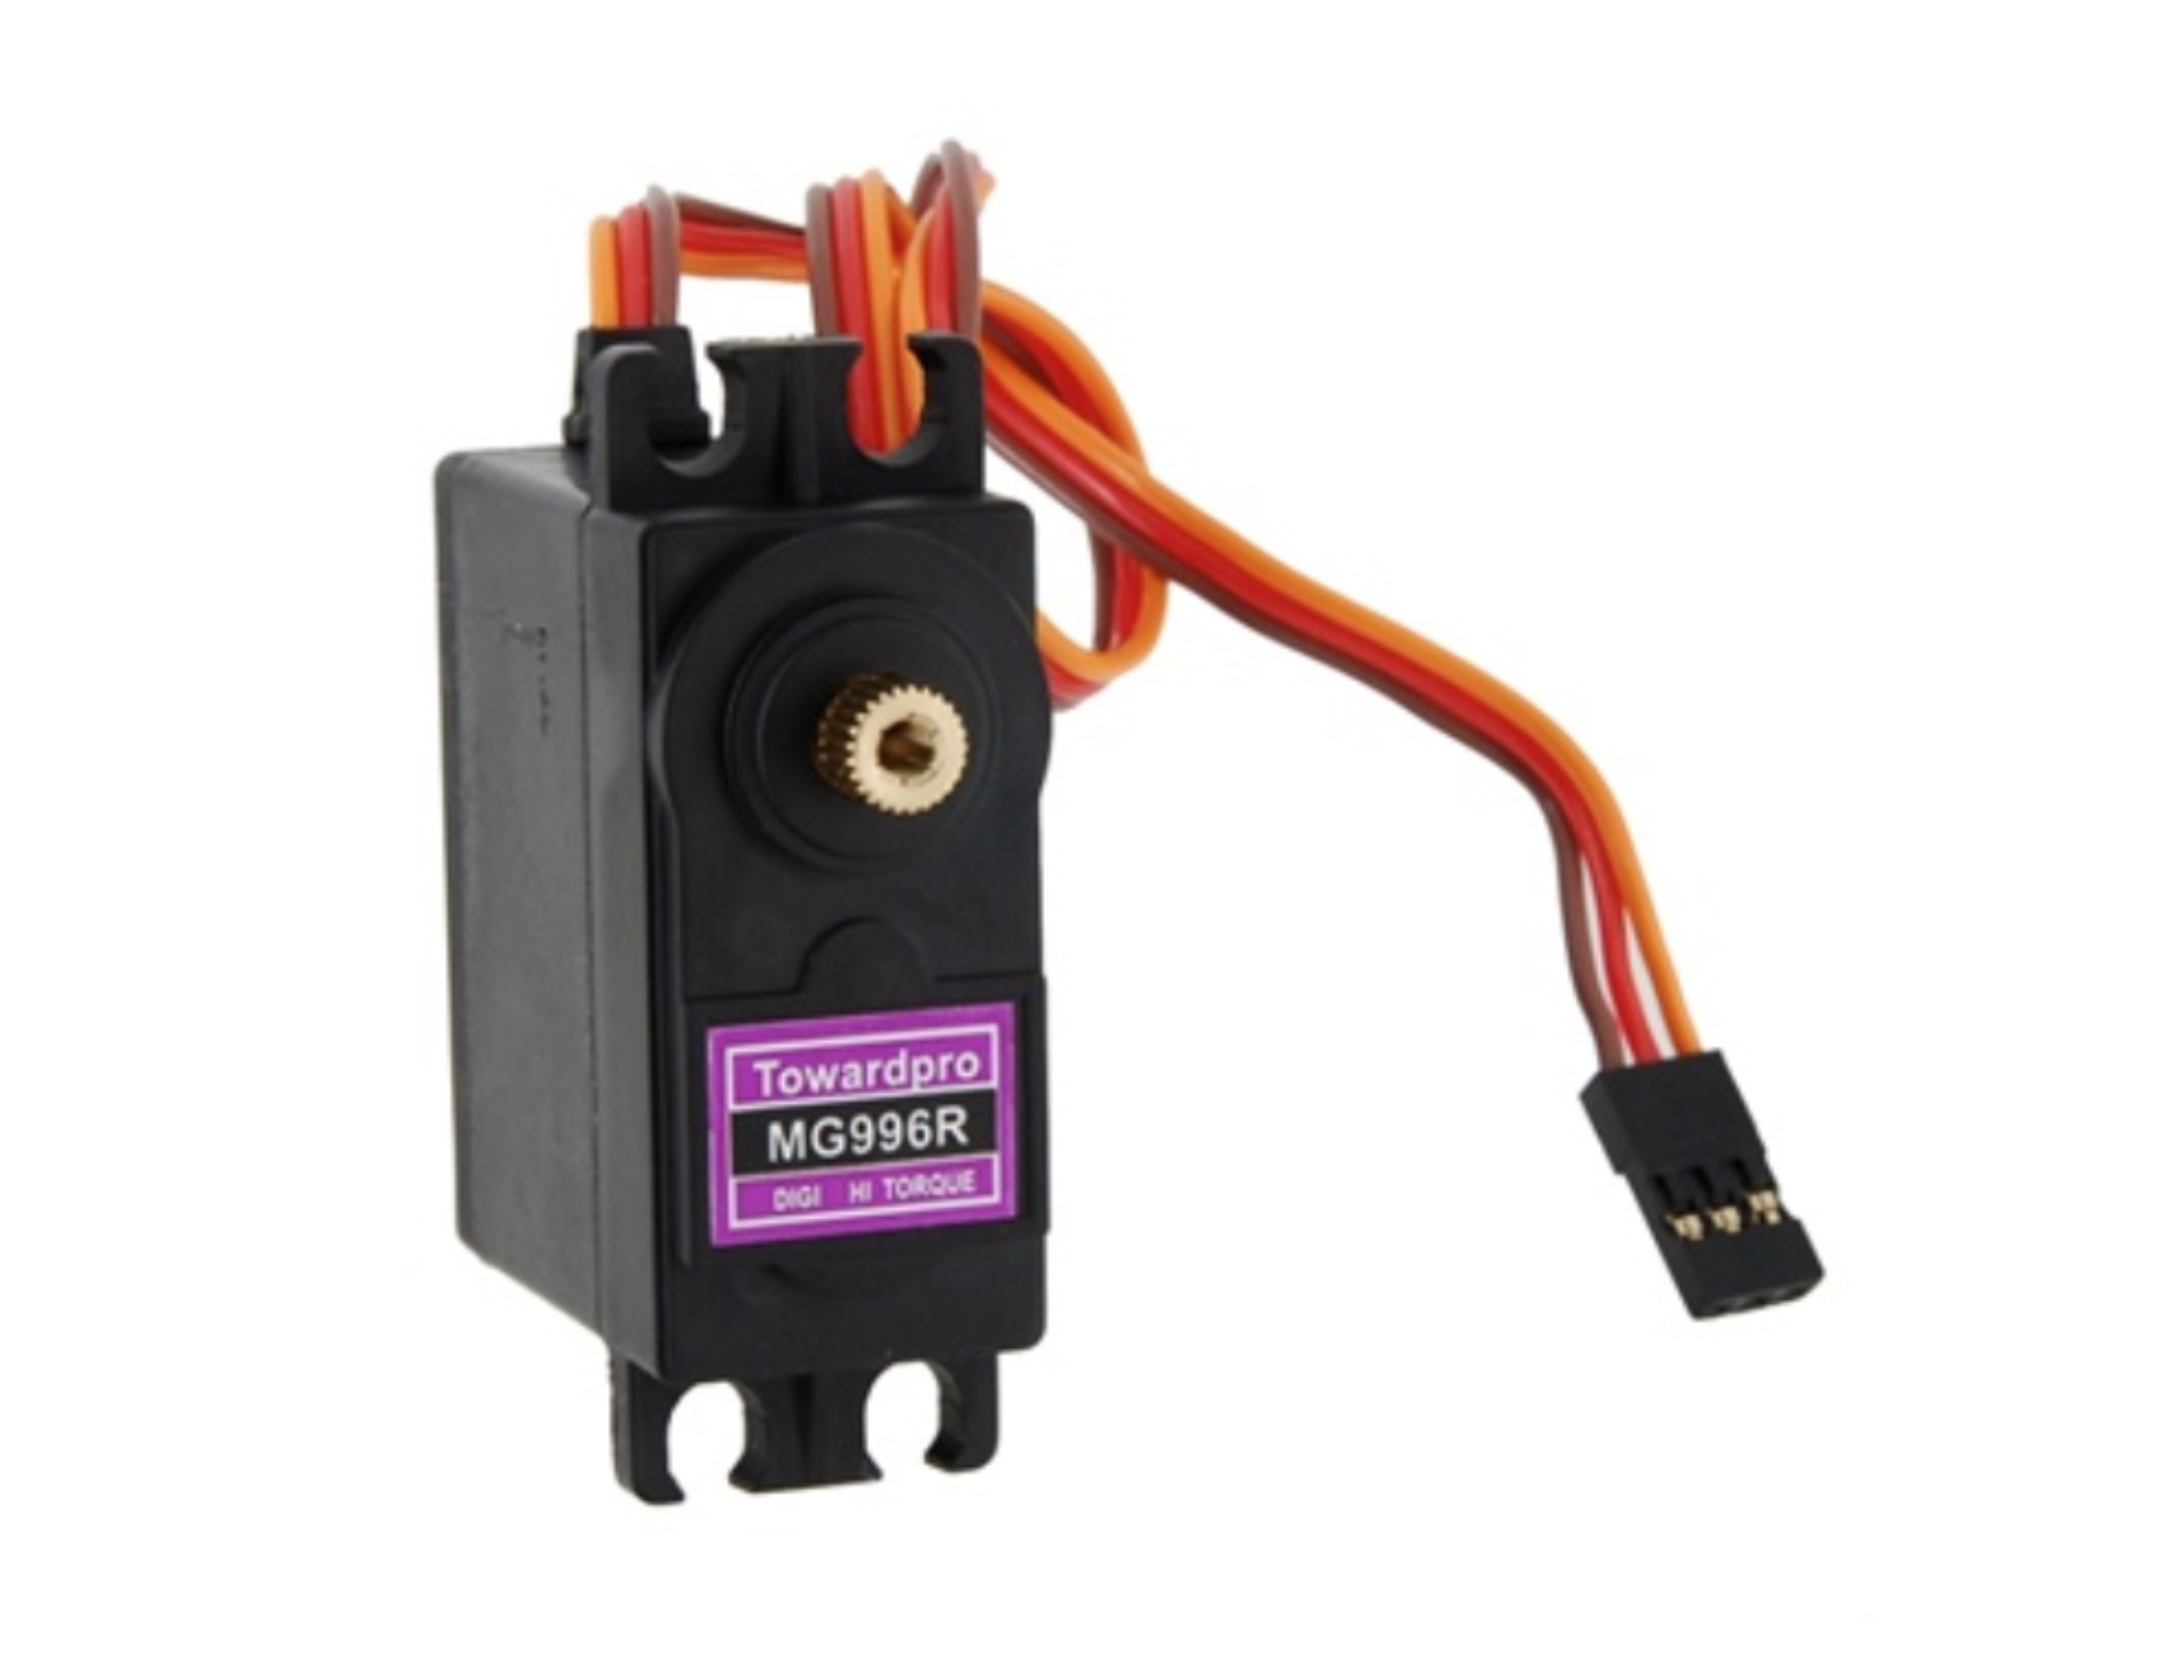 Tower Pro MG996R High Torque Servo